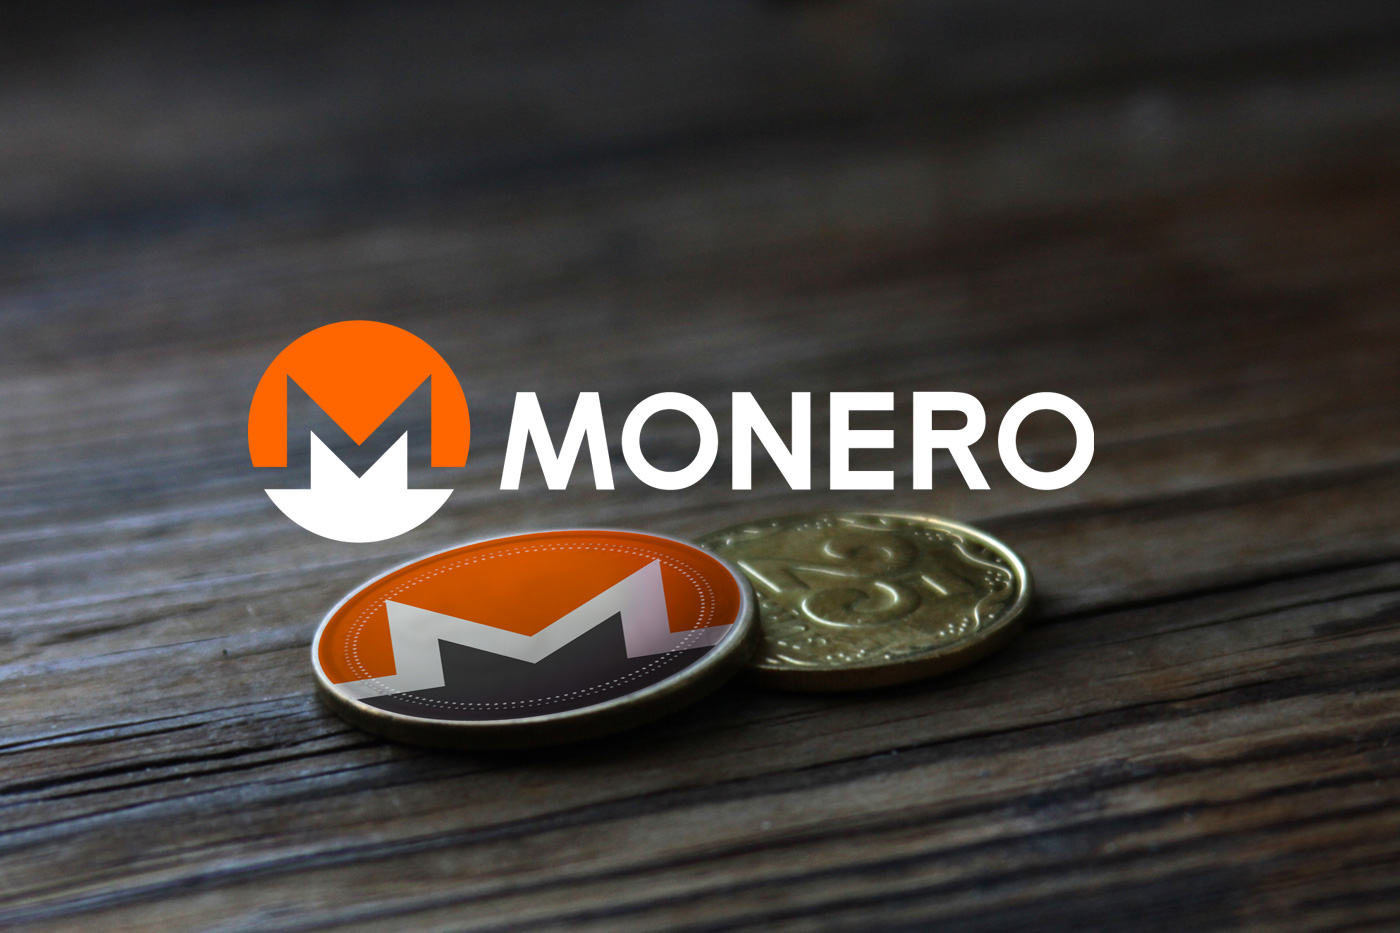 Malware Study Claims Criminals Mined 4.4 Percent of Monero, Less Than Previously Thought